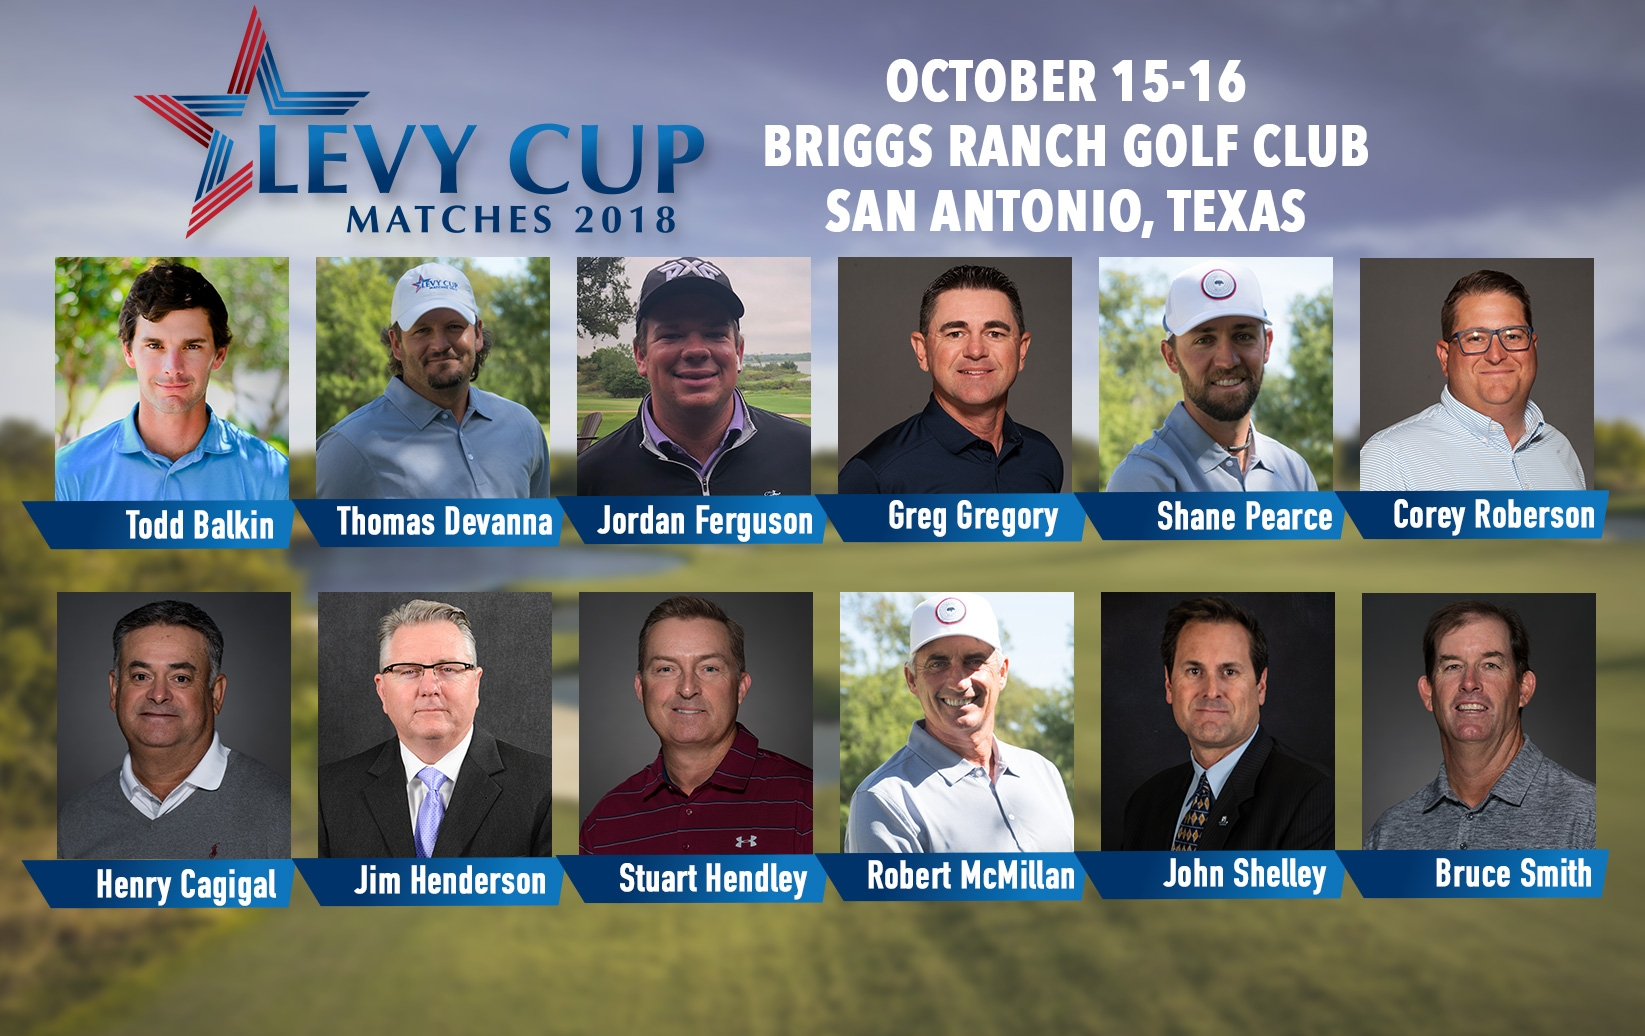 Northern Texas PGA Announces Levy Cup Team